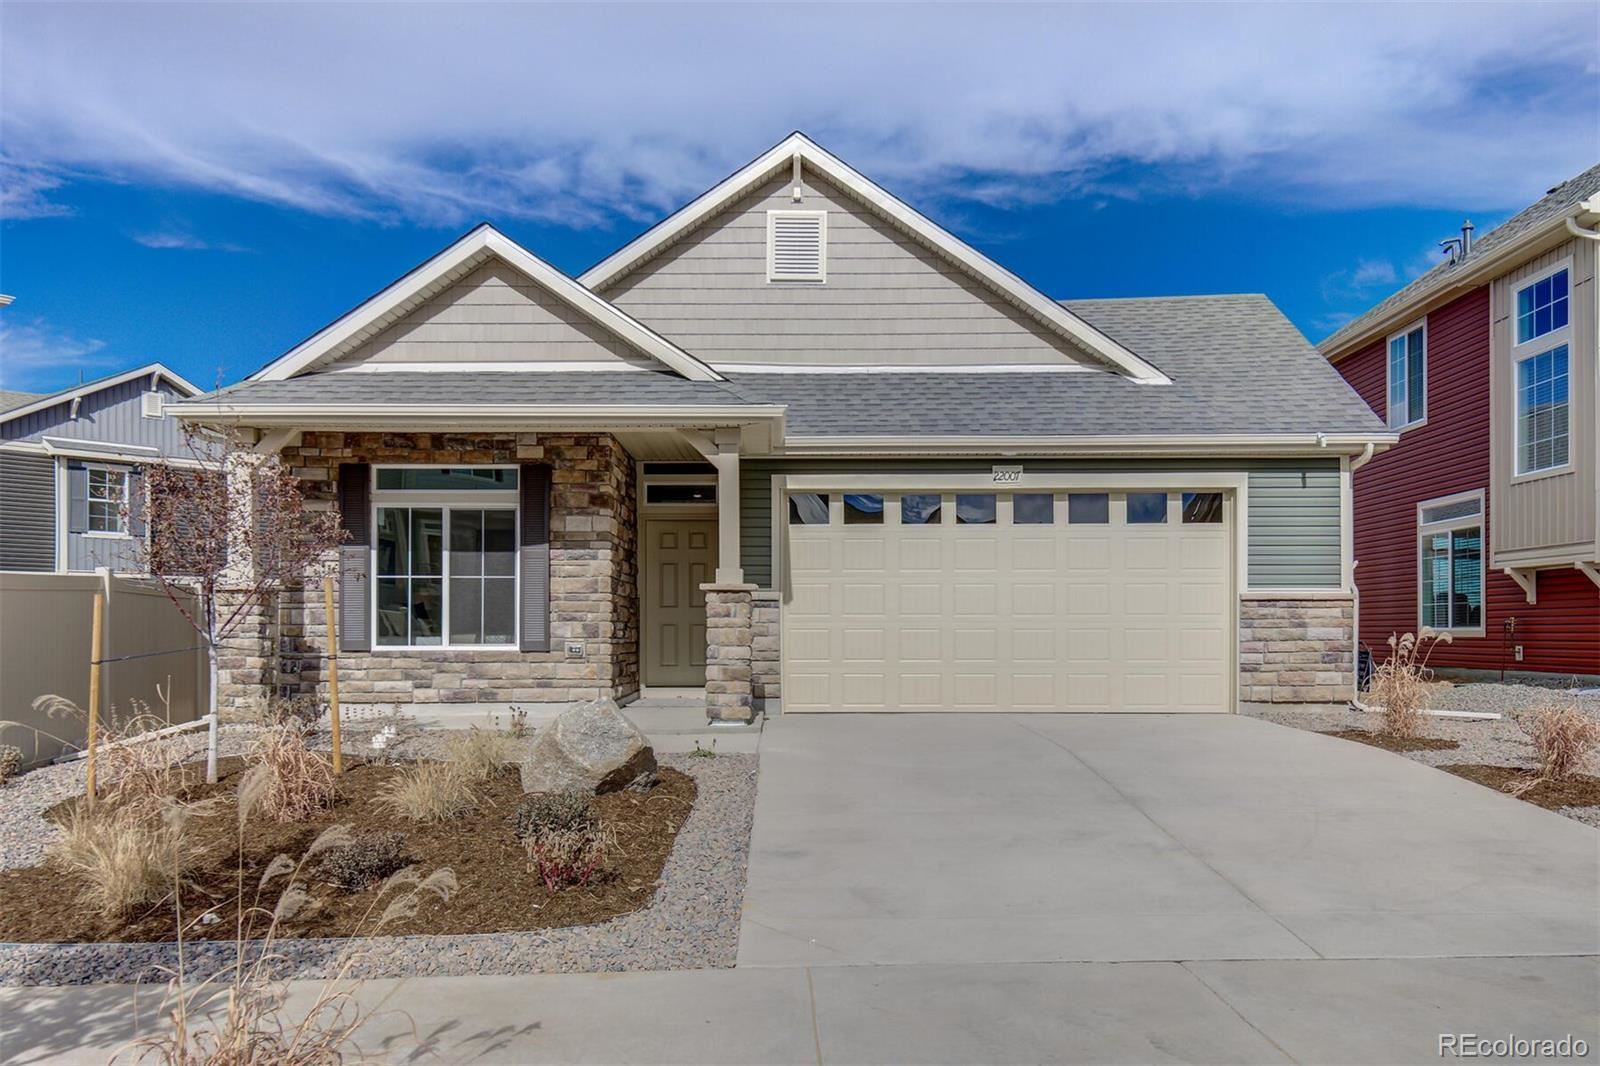 22007 E 45th Place, Aurora, CO 80019 - #: 1783480